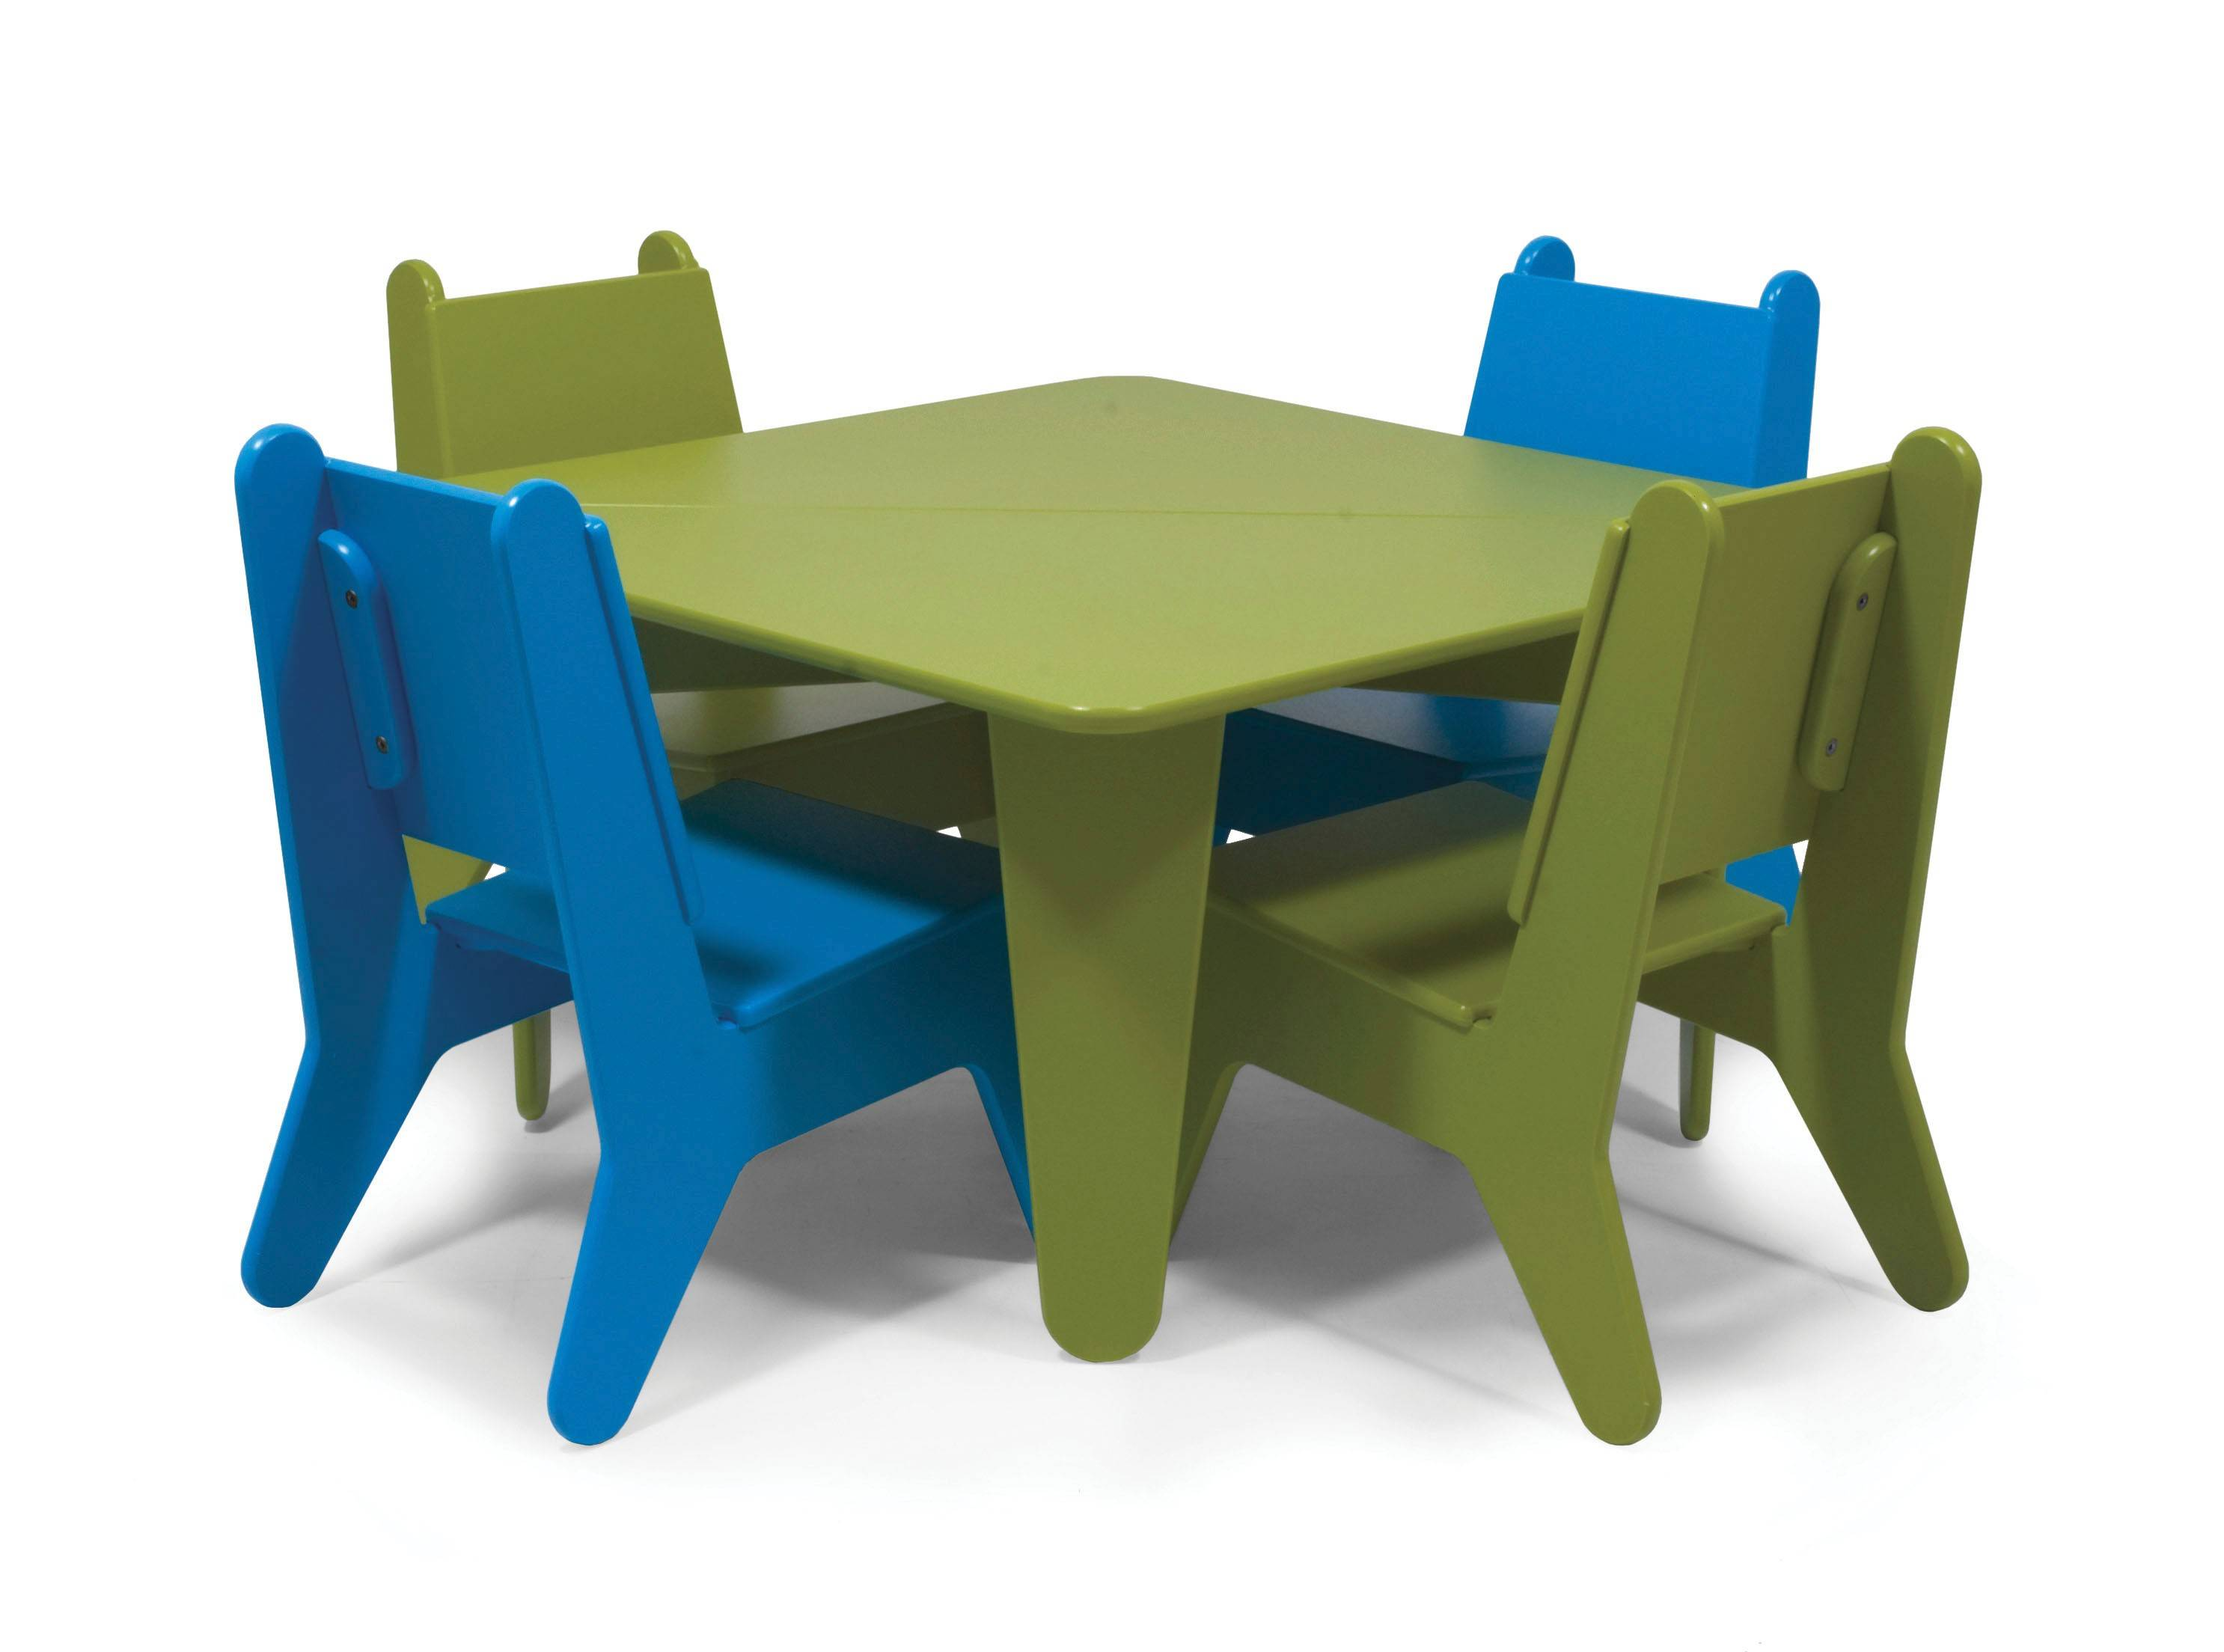 Loll's BBO2 collection has been named among Time magazine's Top 100 Green Products and won Garden Design's Green Award. Here, the BB02 table and chairs.